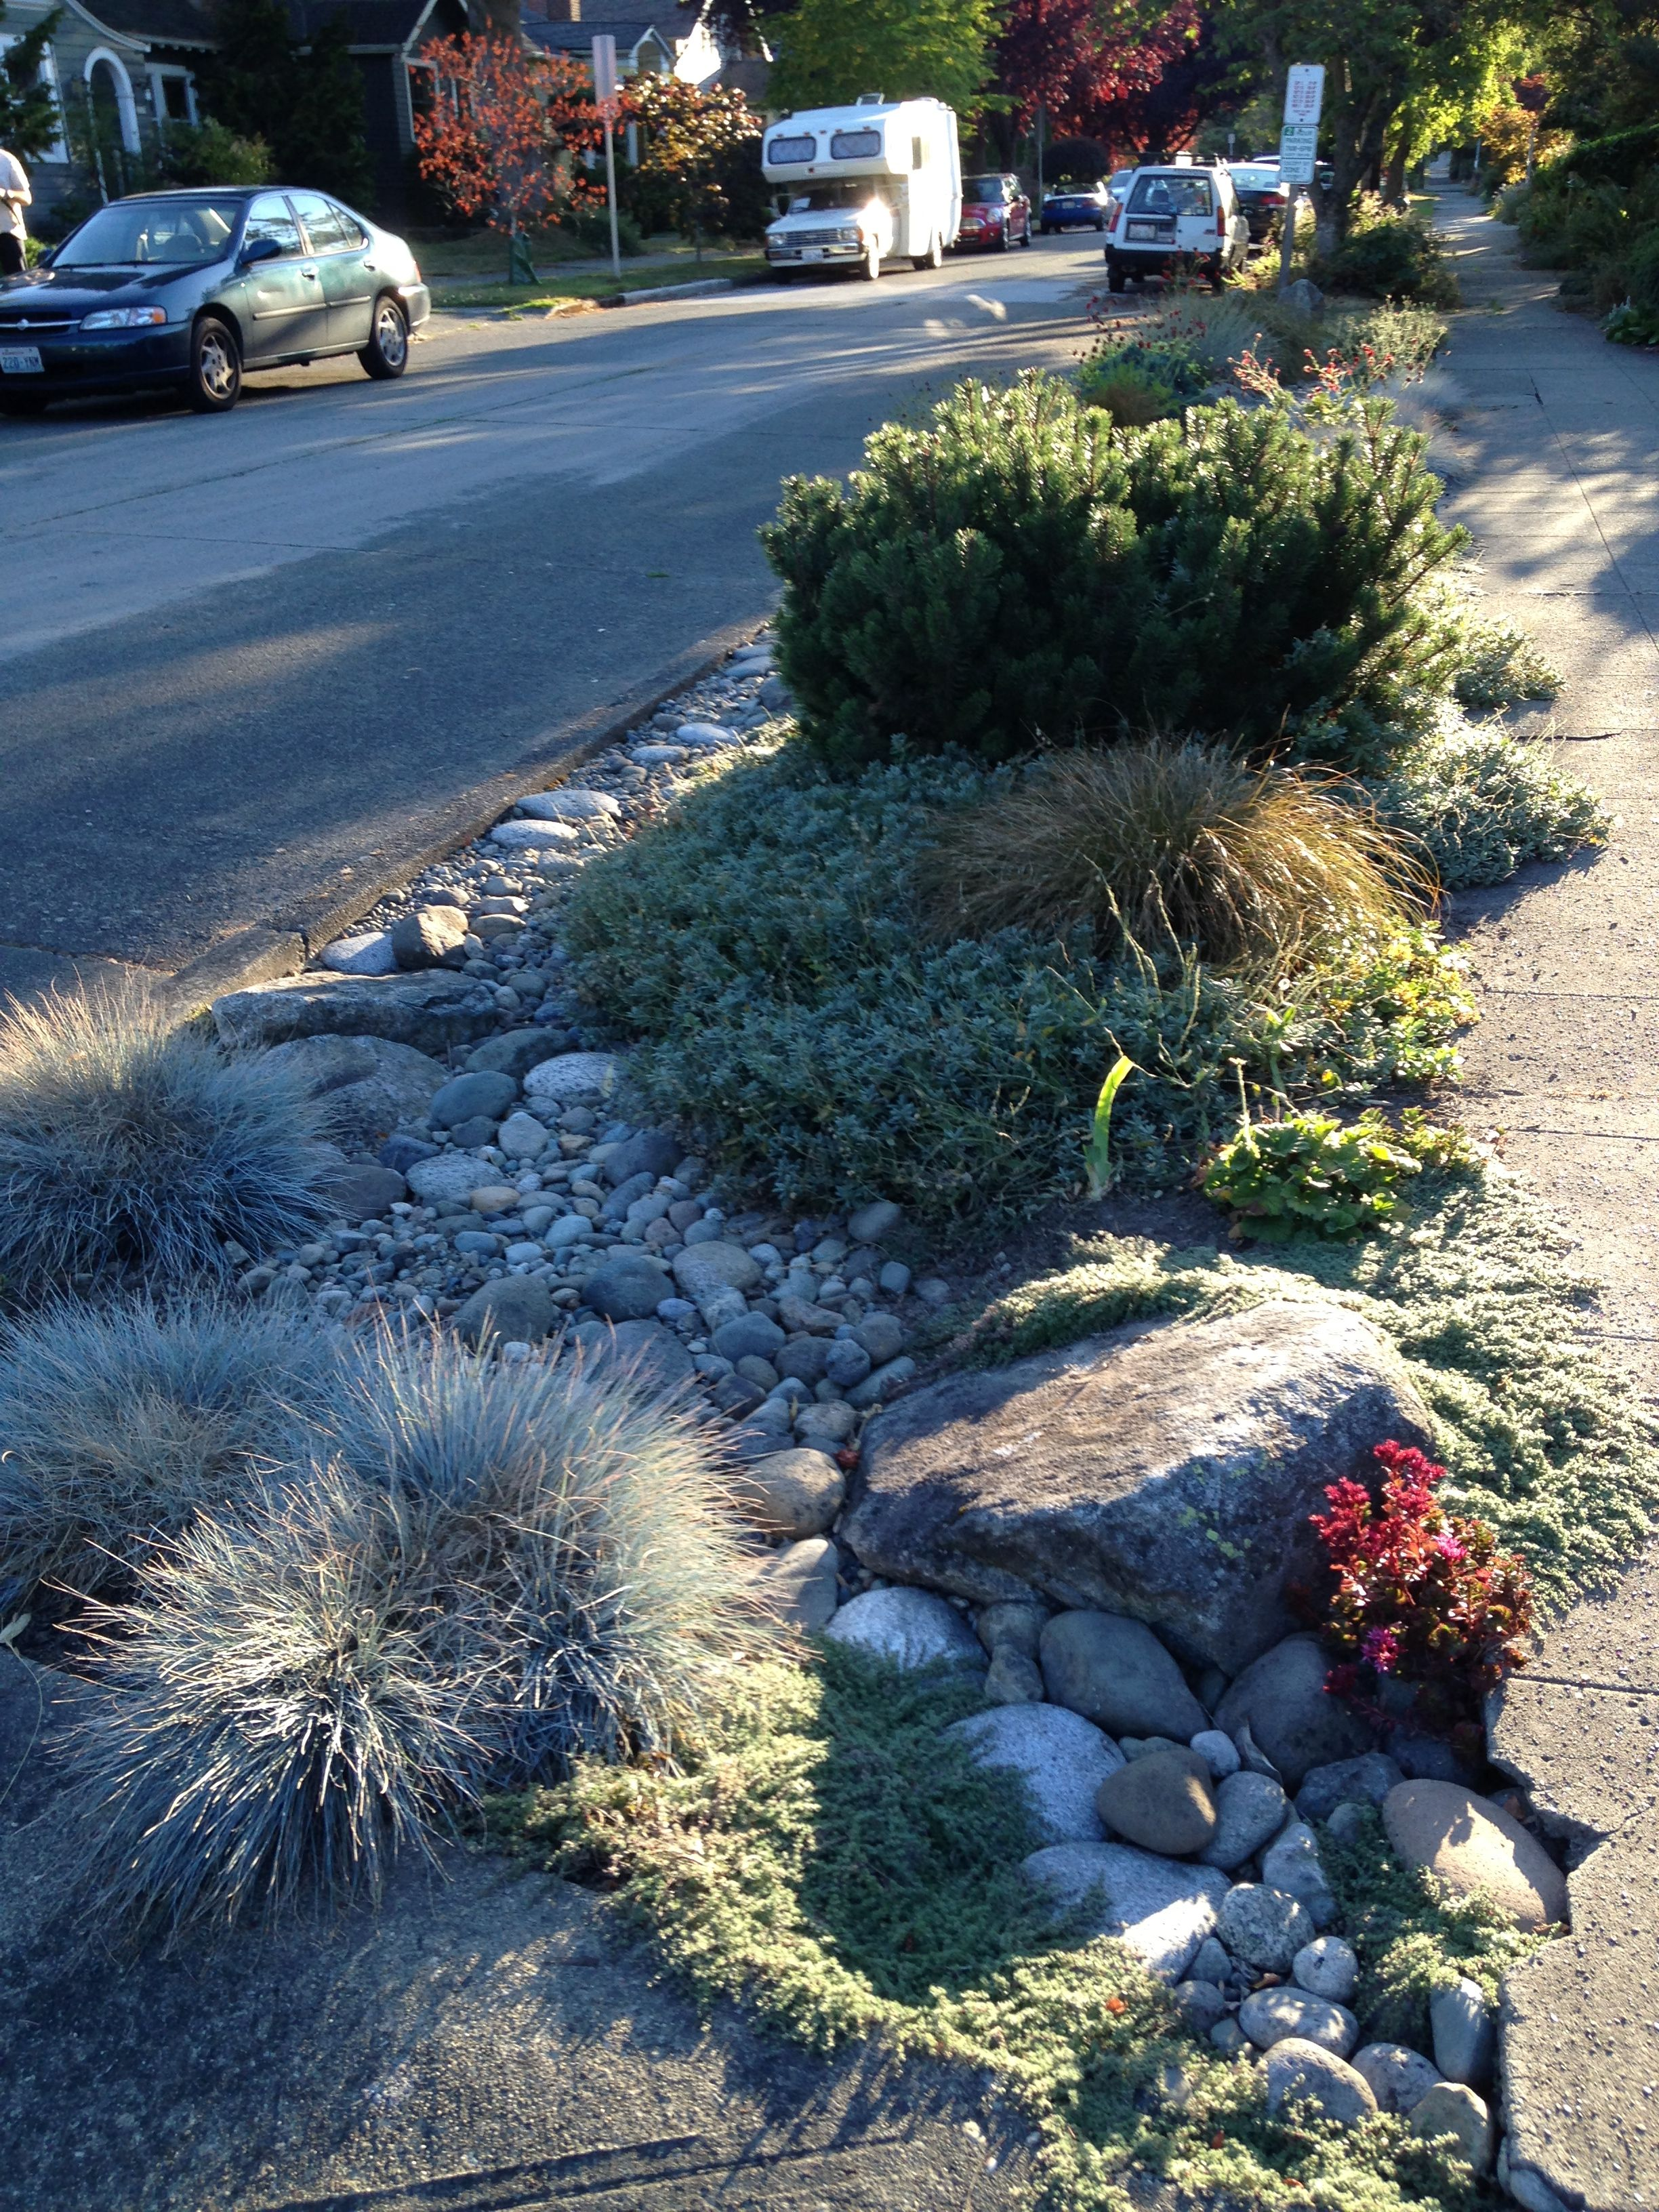 Front garden ideas with parking - Beautiful Rock River For Landscaping The Parking Strip Area In The Front Yard The Is